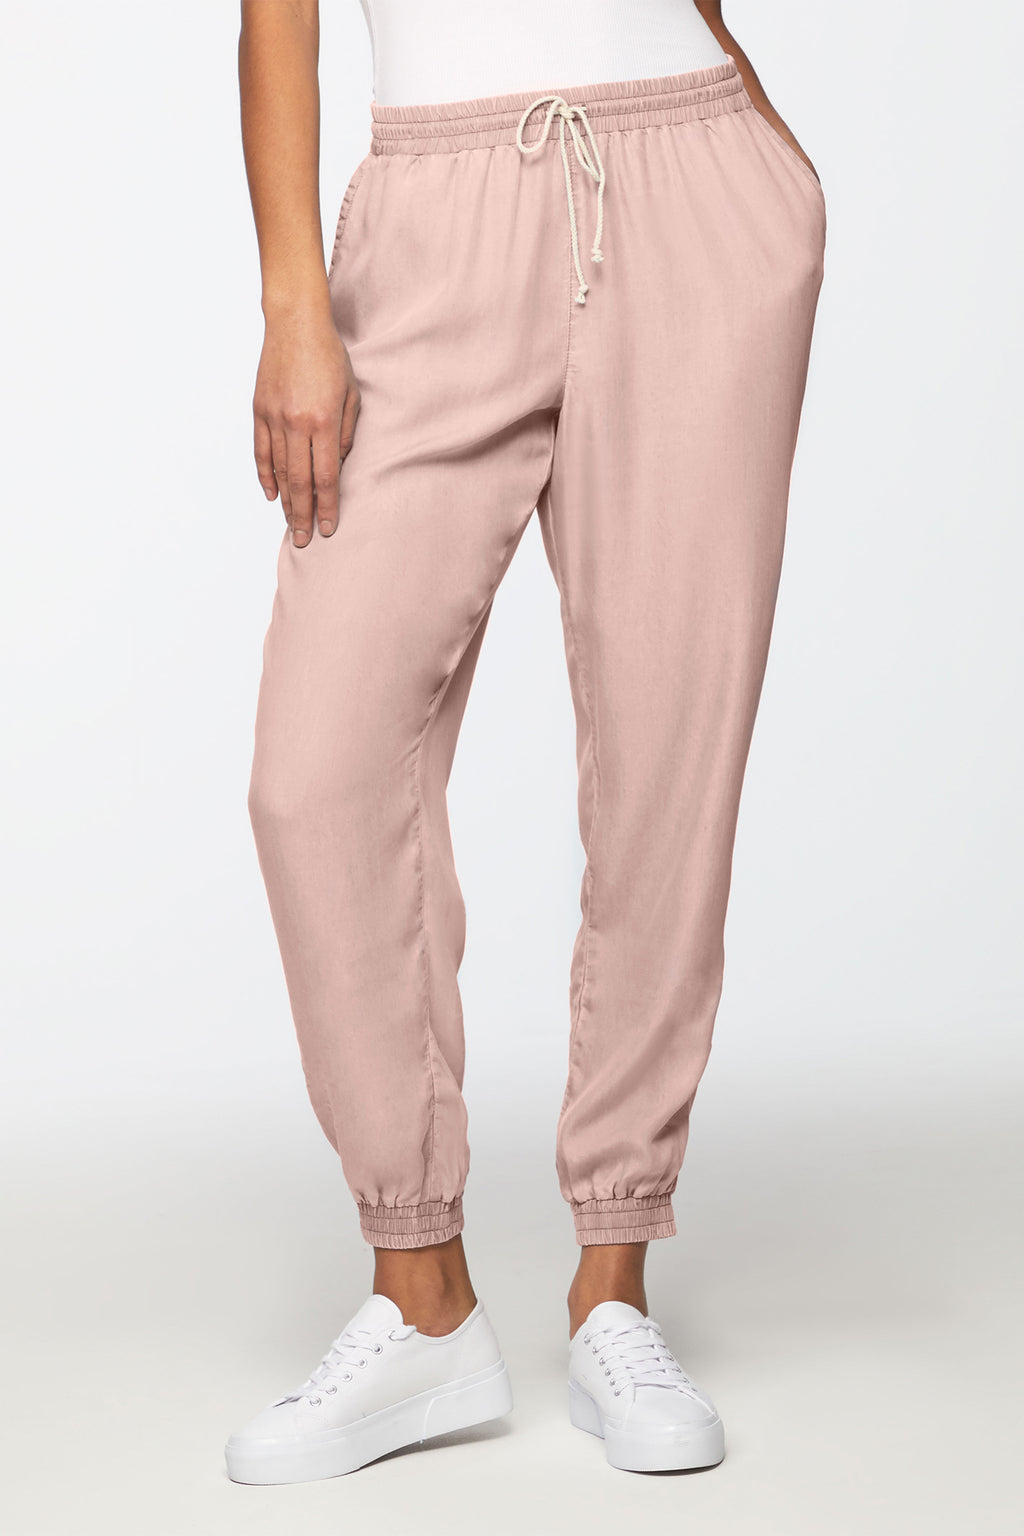 DIXIE PANT - DUSTY ROSE